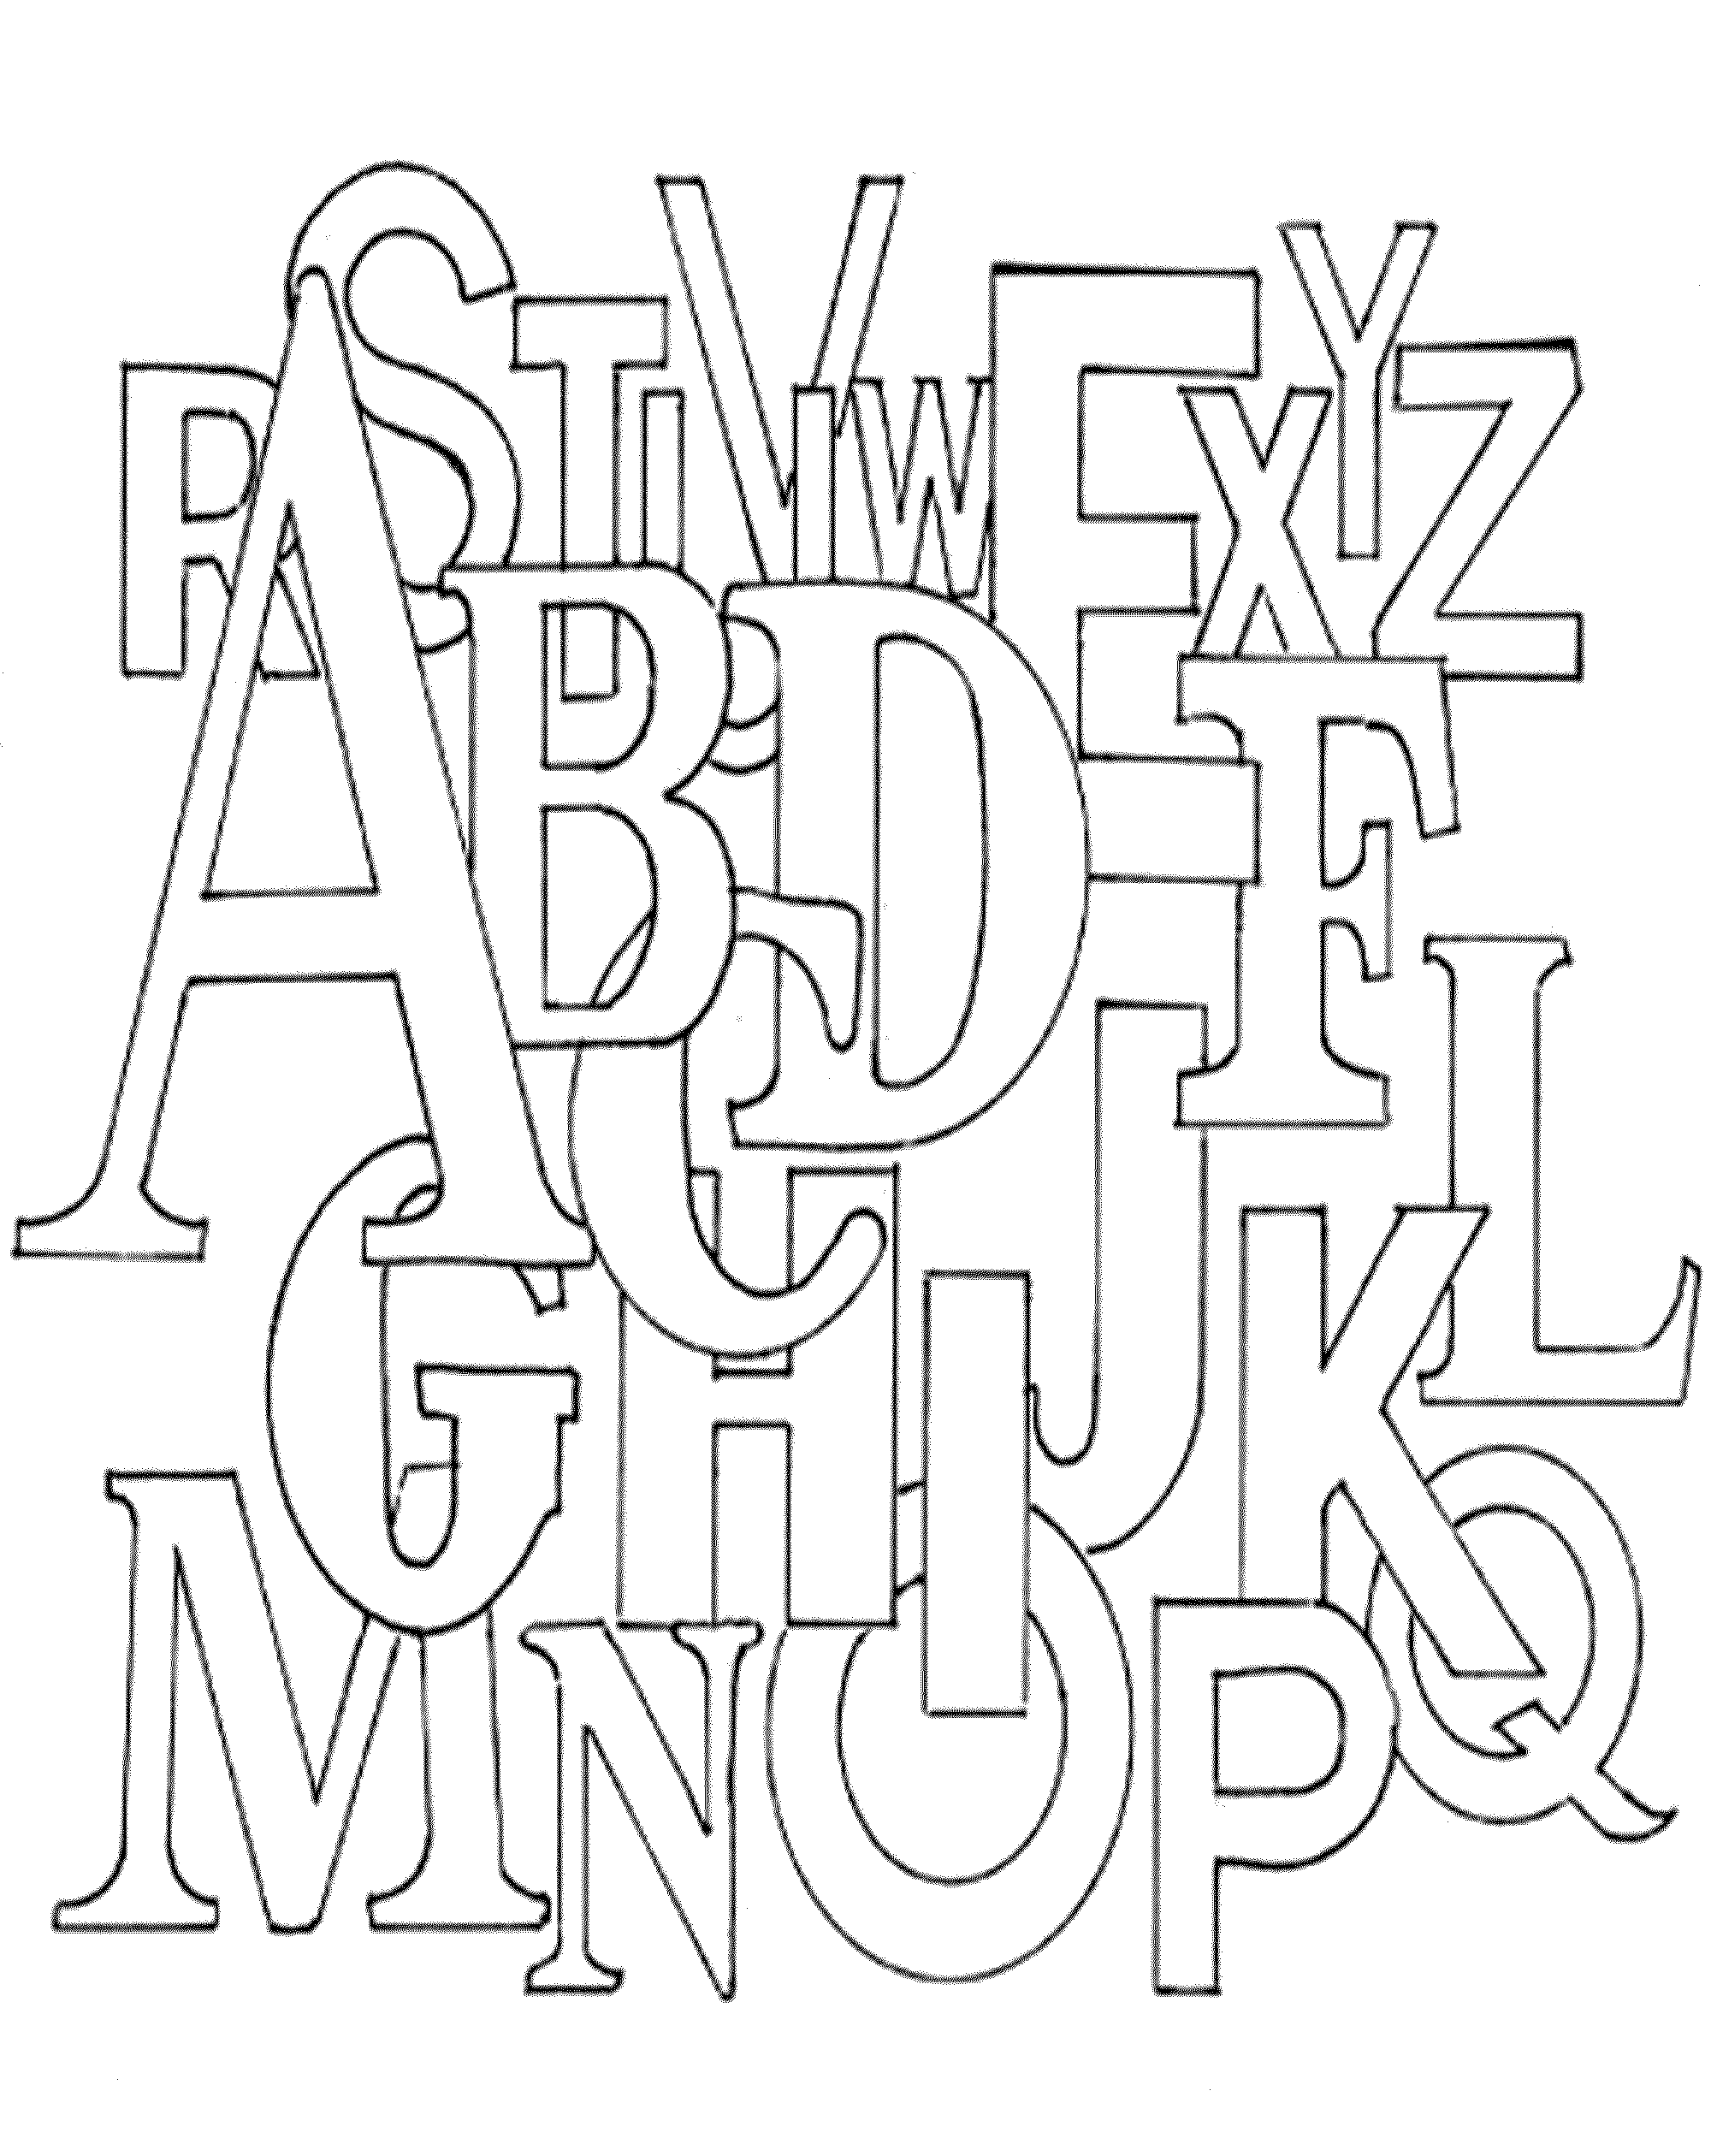 abc alphabet coloring sheets abc alphabet coloring pages download and print abc alphabet abc sheets coloring